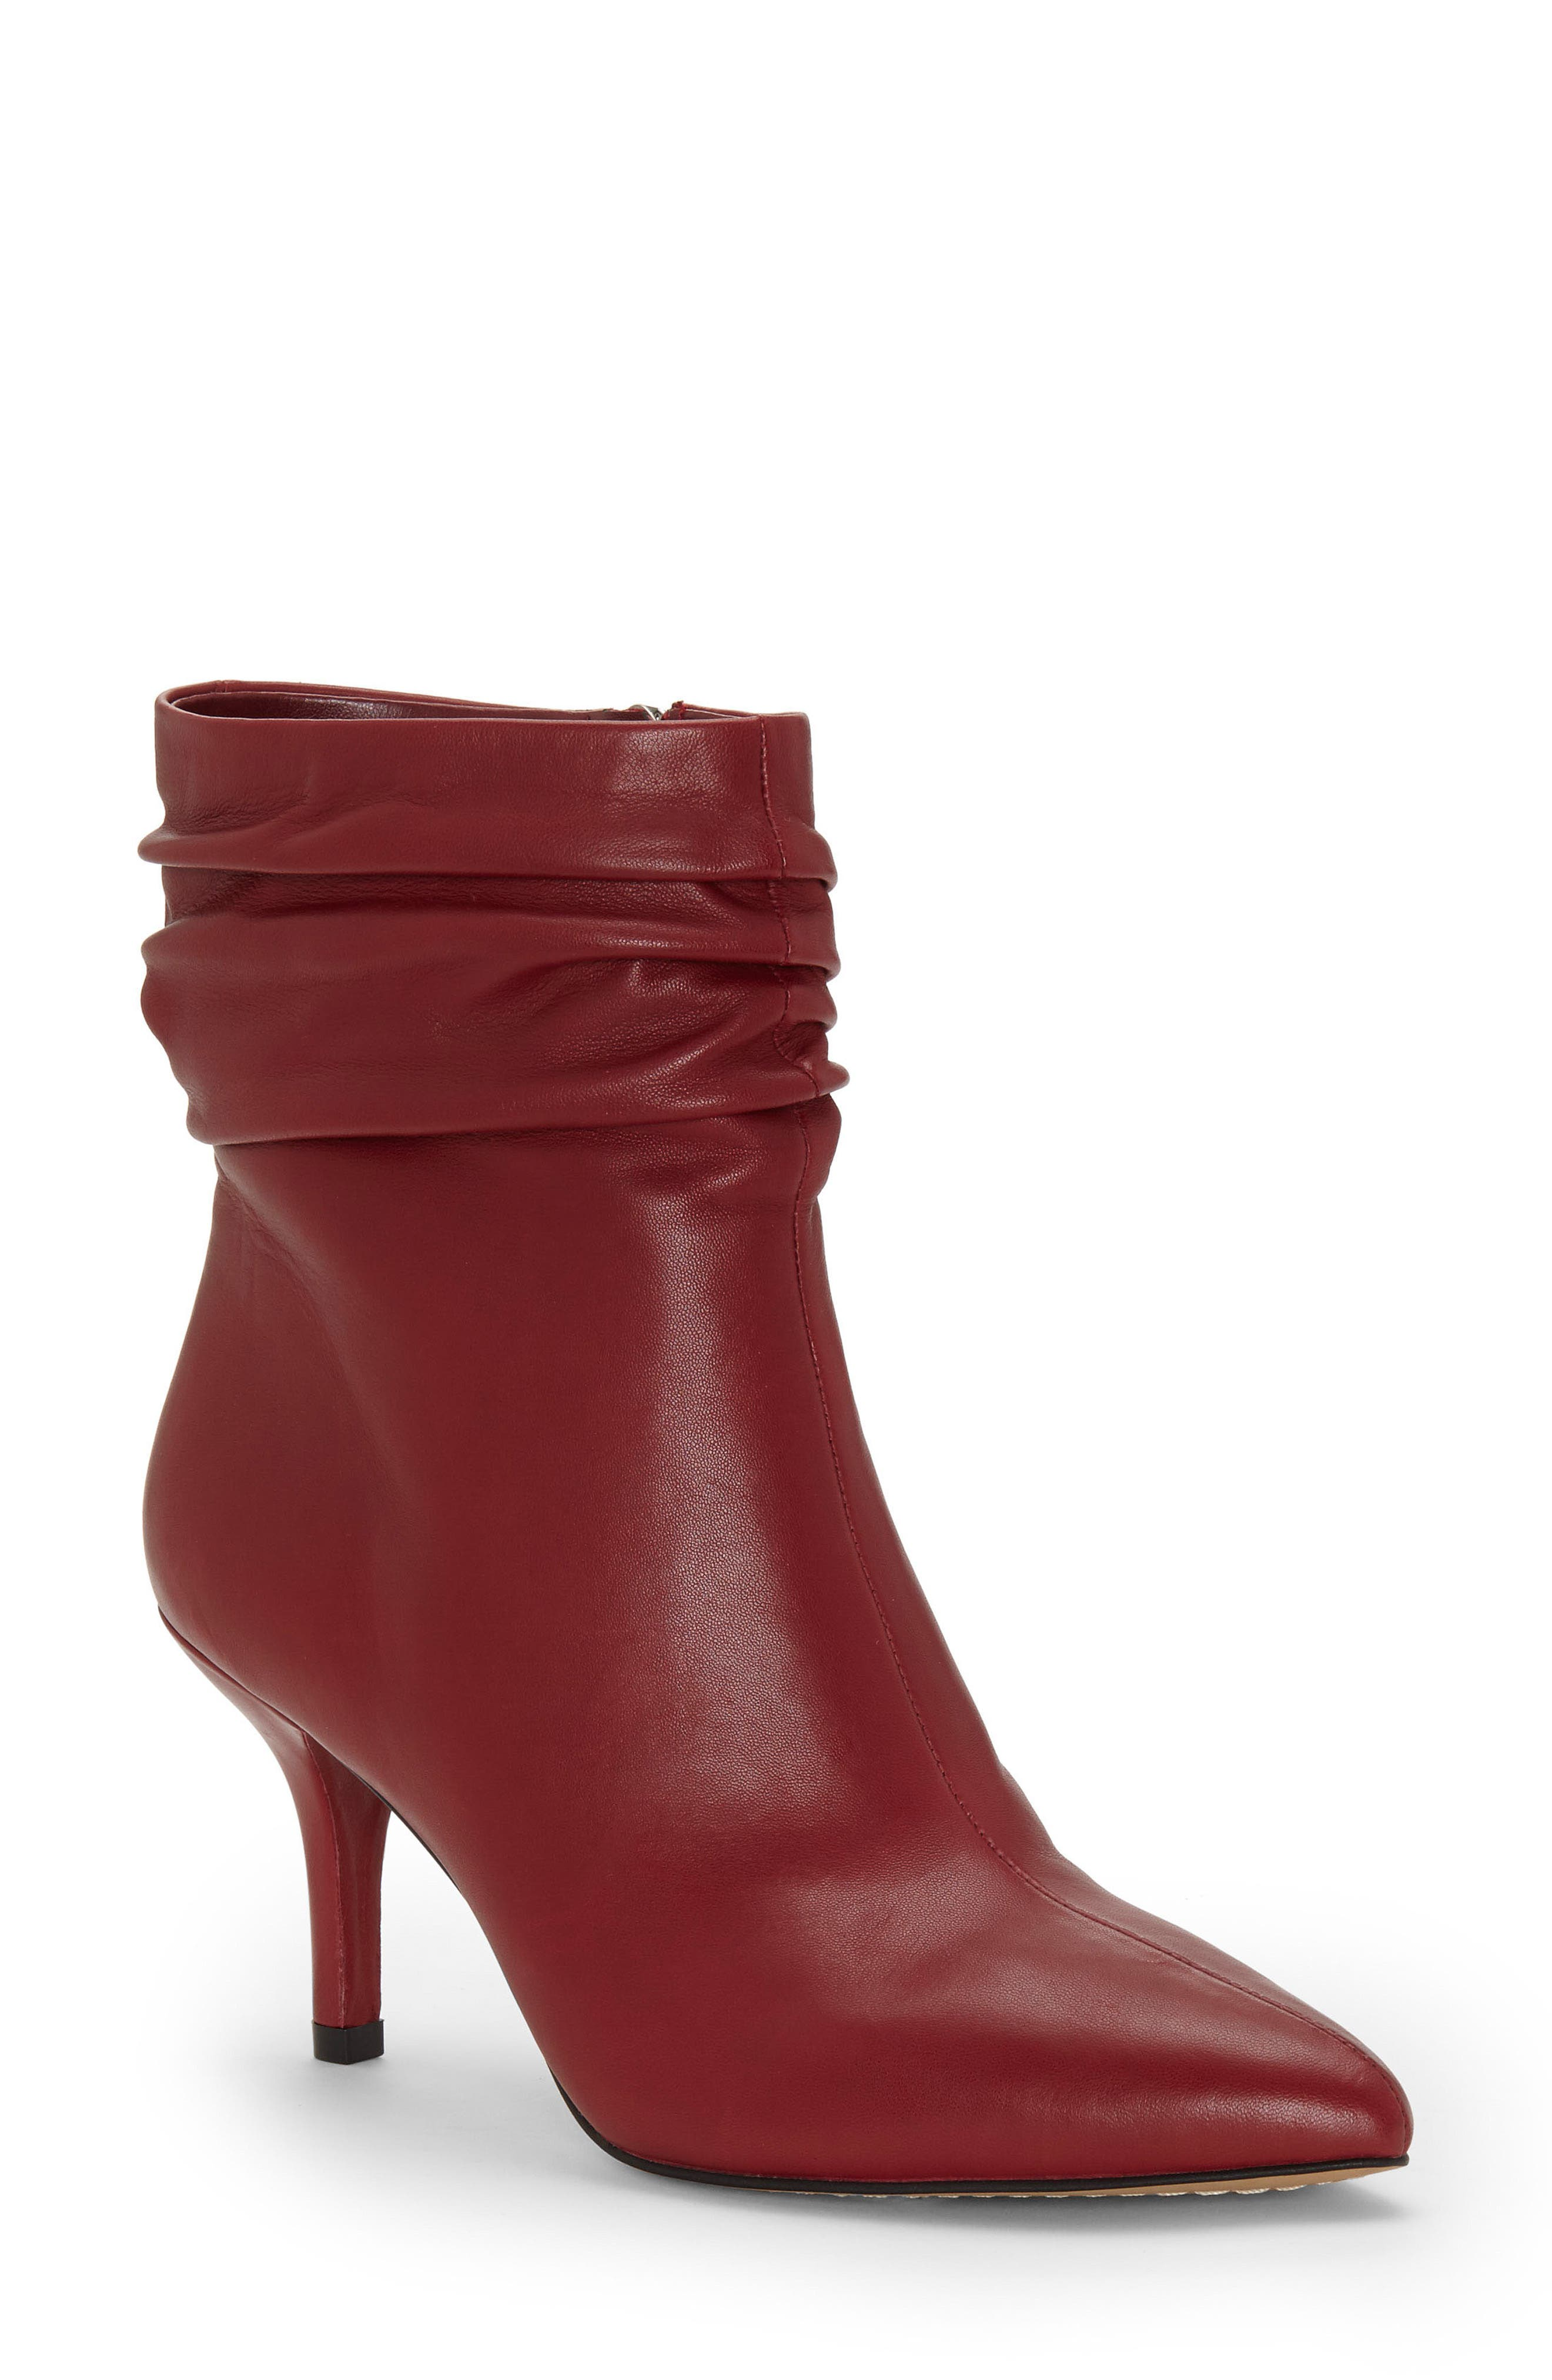 Vince Camuto Abrianna Bootie- Red